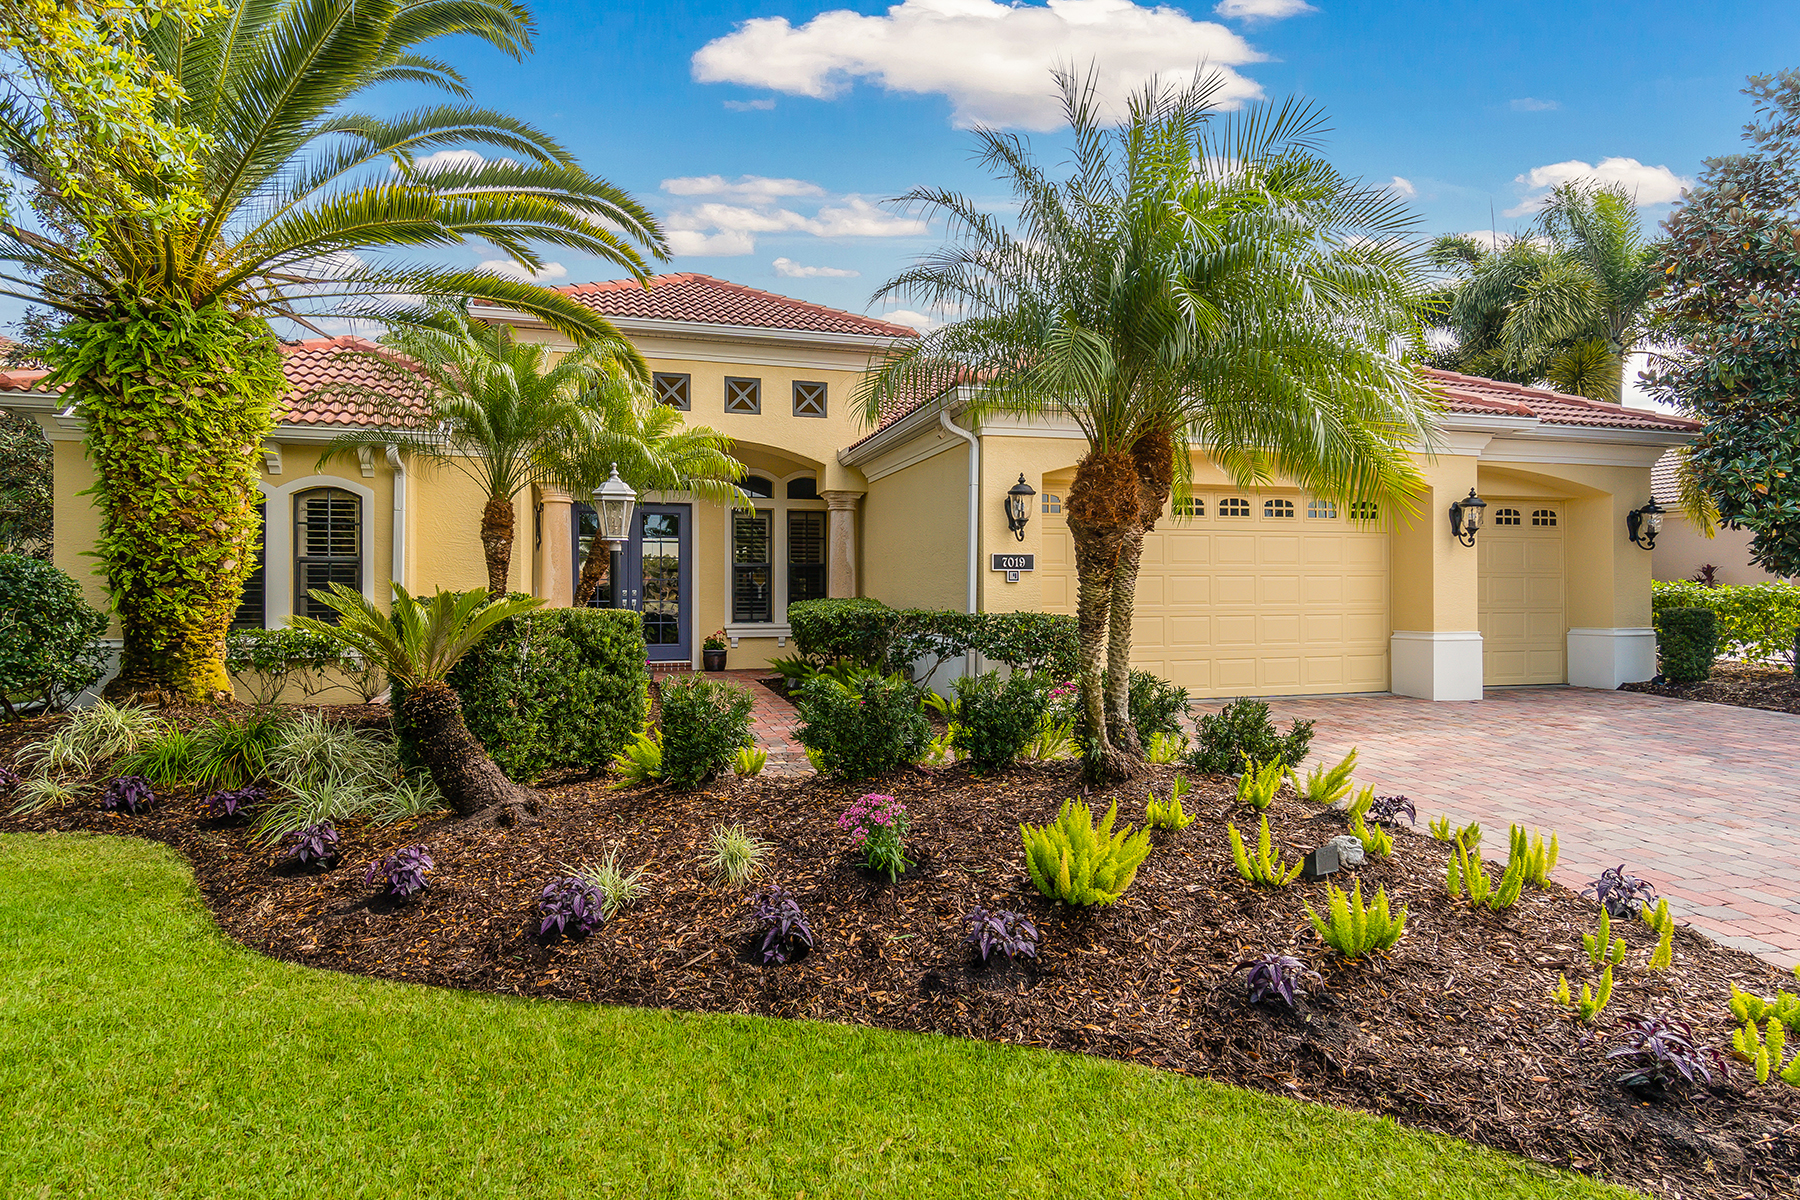 Casa Unifamiliar por un Venta en LAKEWOOD COUNTRY CLUB VILLAGE 7019 Brier Creek Ct Lakewood Ranch, Florida, 34202 Estados Unidos